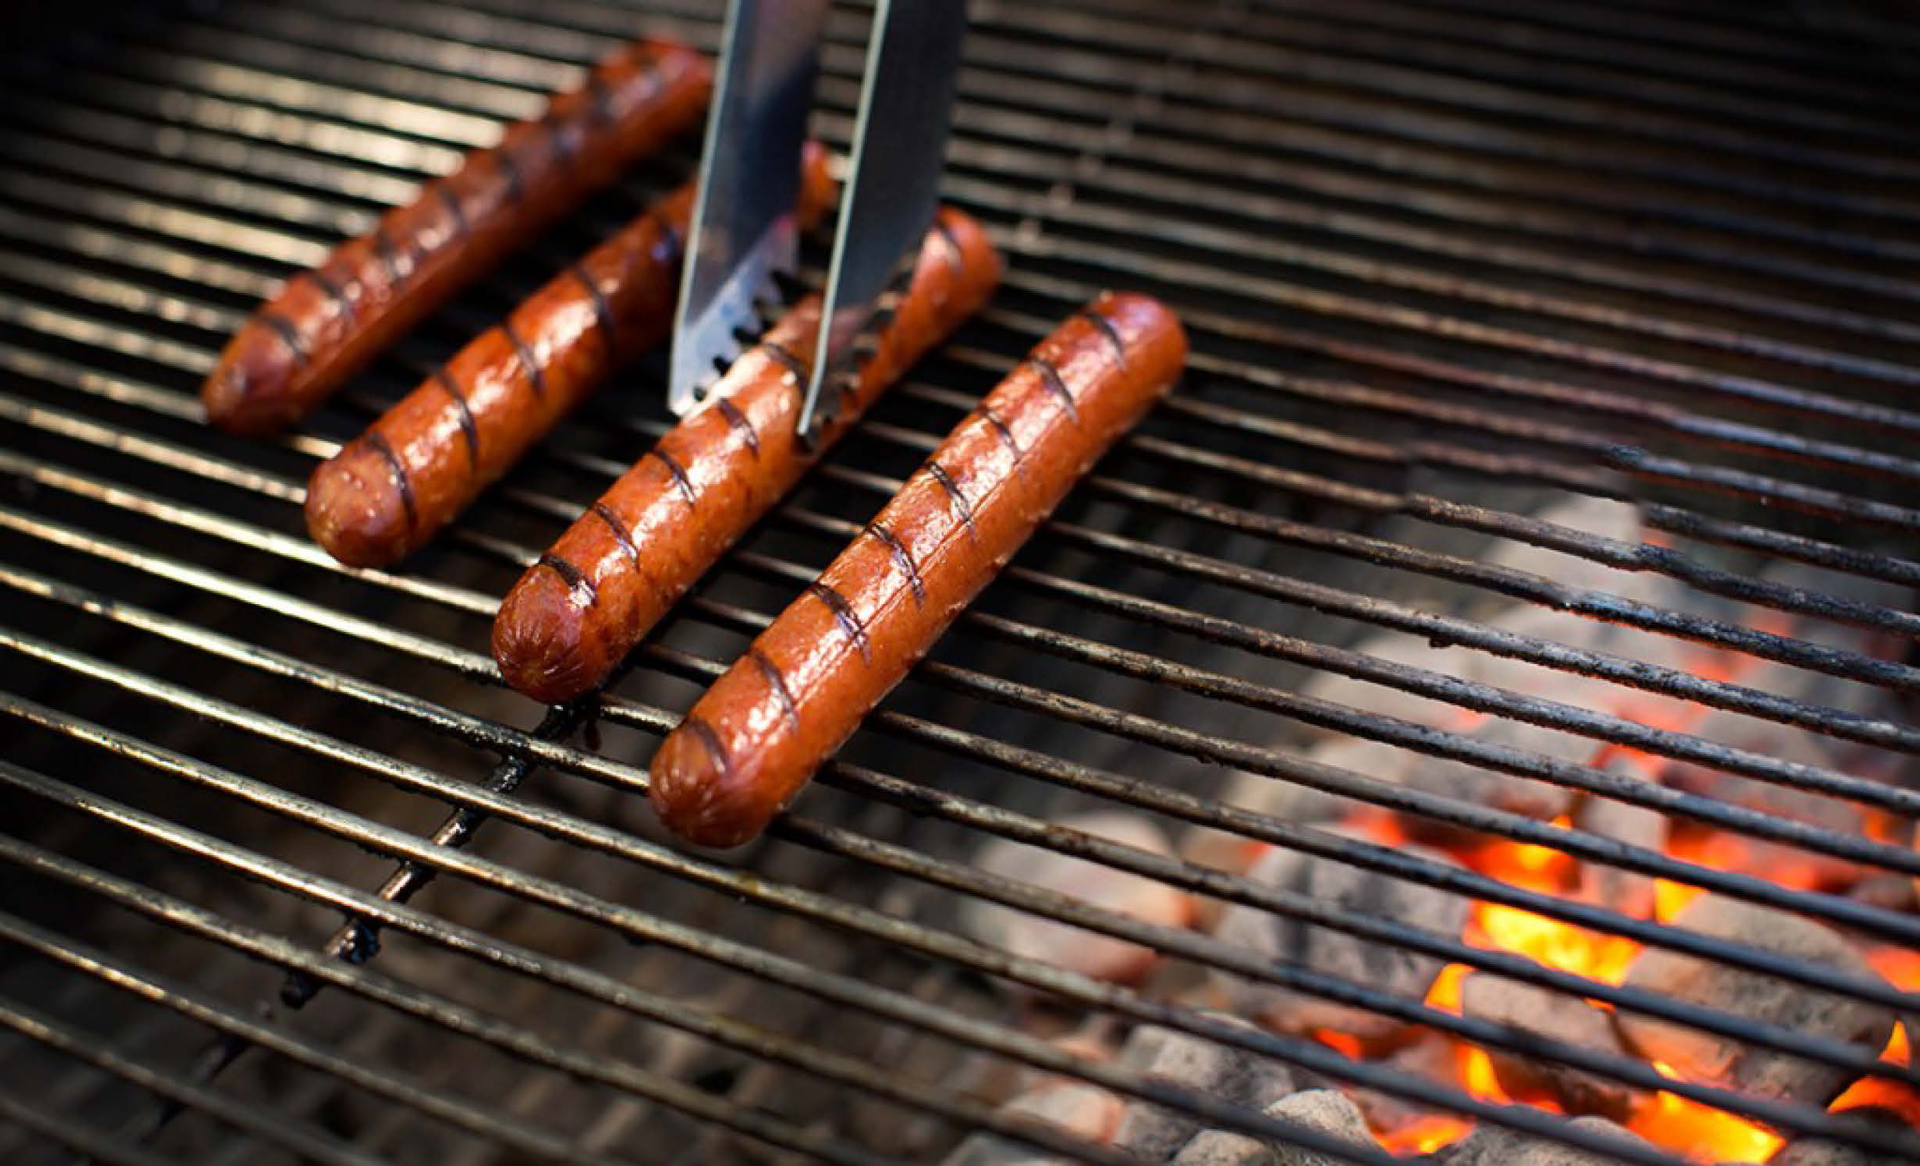 grill your pureland america organic hot dogs for flavour